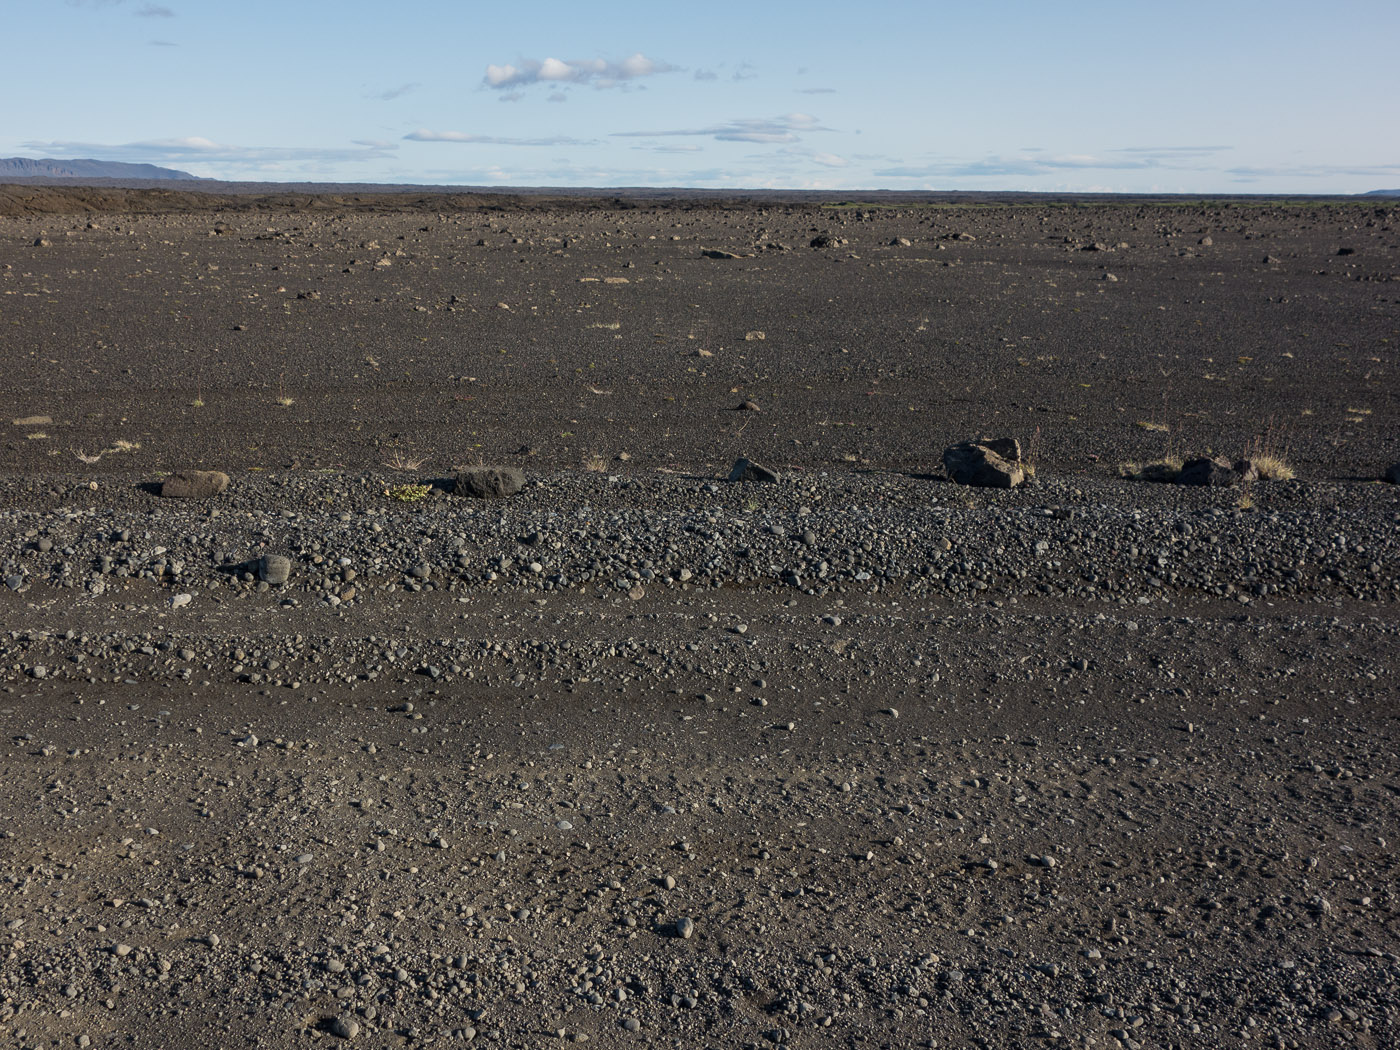 Northern Iceland - Back to Svarfaðardalur. On vacation. - Stones ... (beside road F88) (25 July 2014)